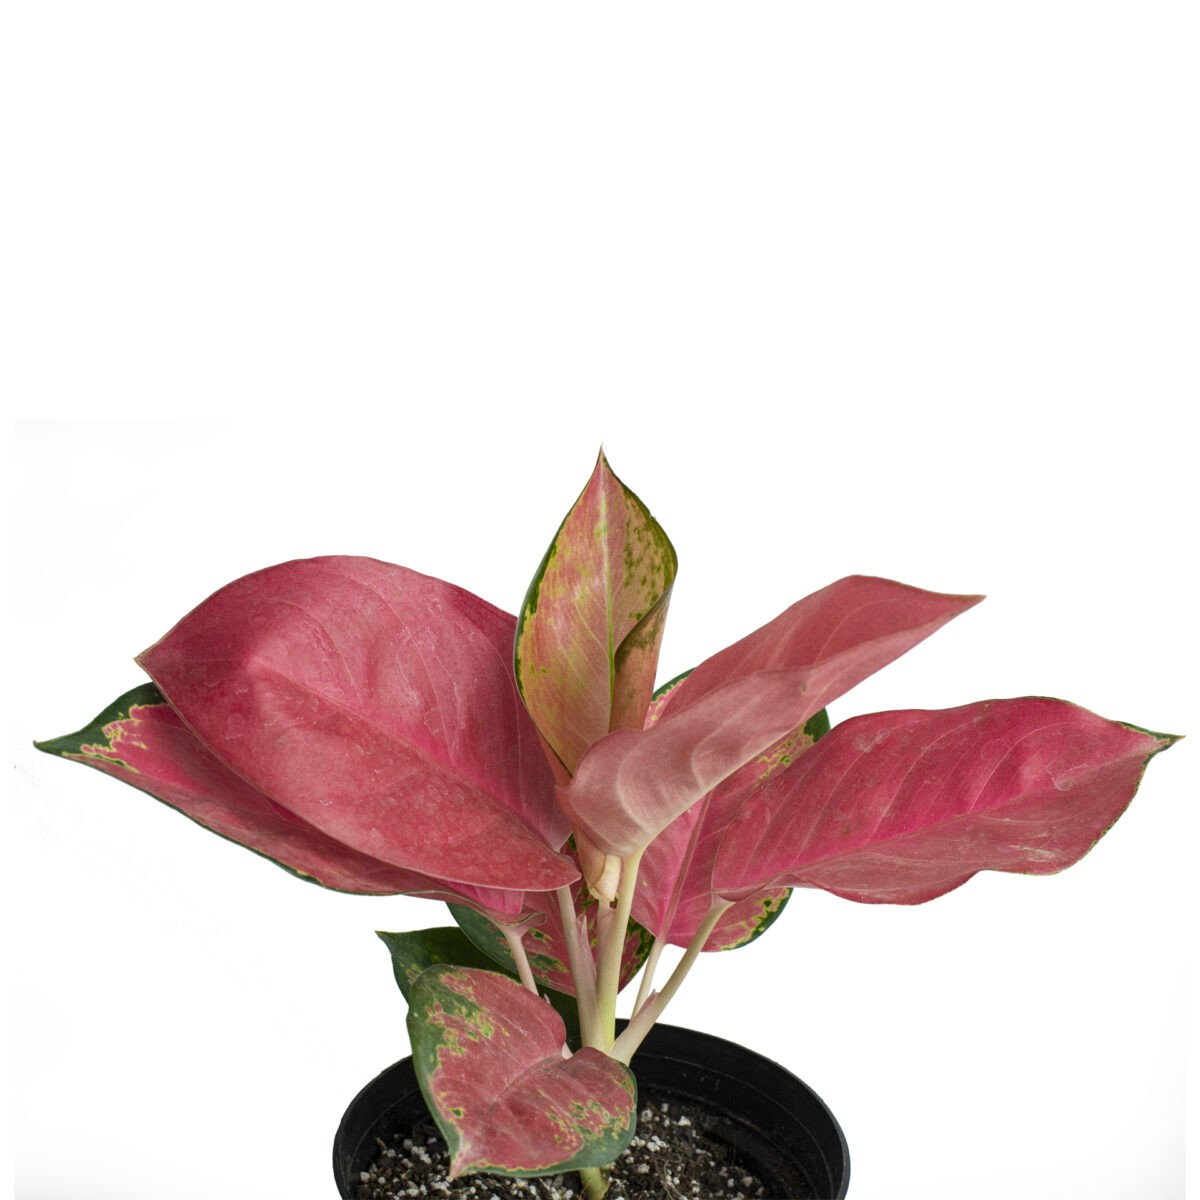 Aglaonema 'Suksom Jaipong' plant indoor for office desk plant or table top plant